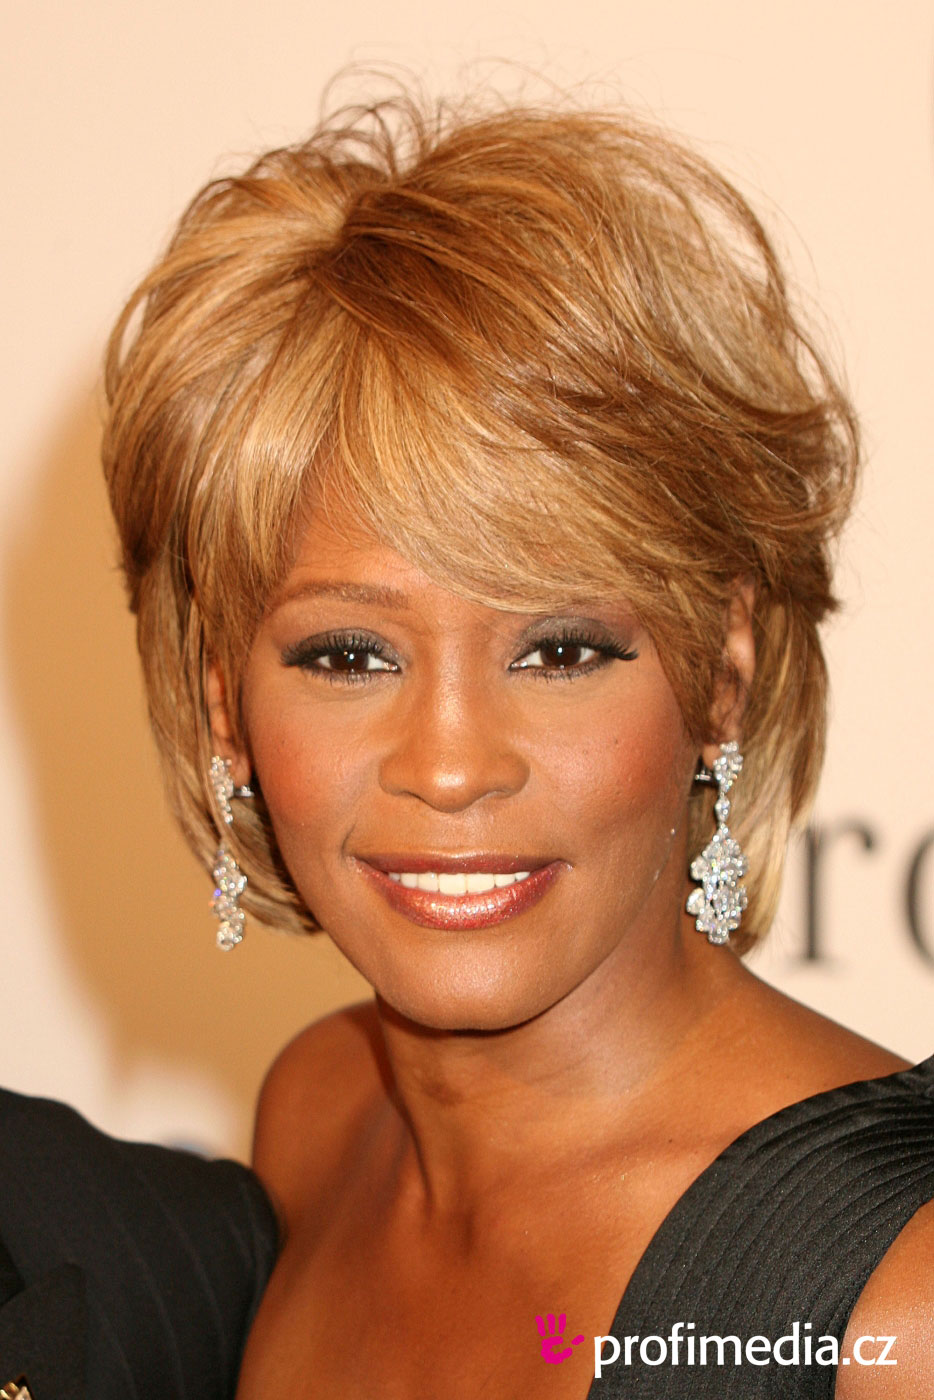 Účes celebrity - whitney houston - whitney houston